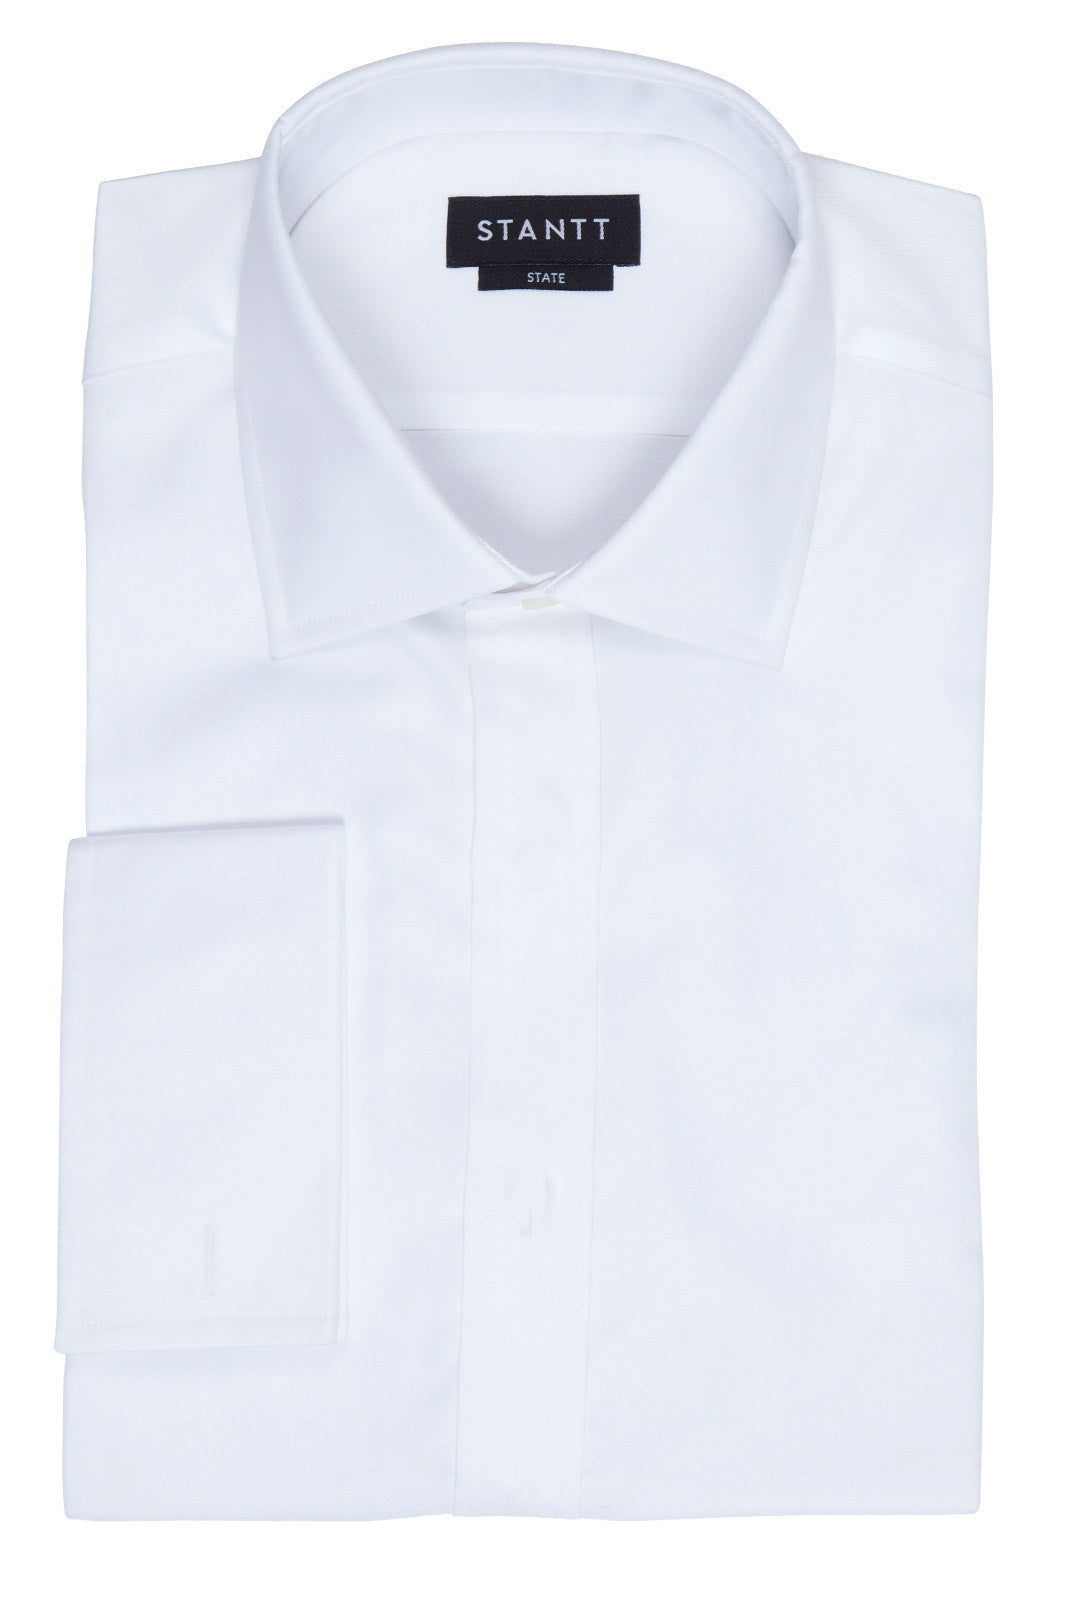 Fine White Twill Formal Shirt: Modified-Spread Collar, French Cuff, Hidden Placket